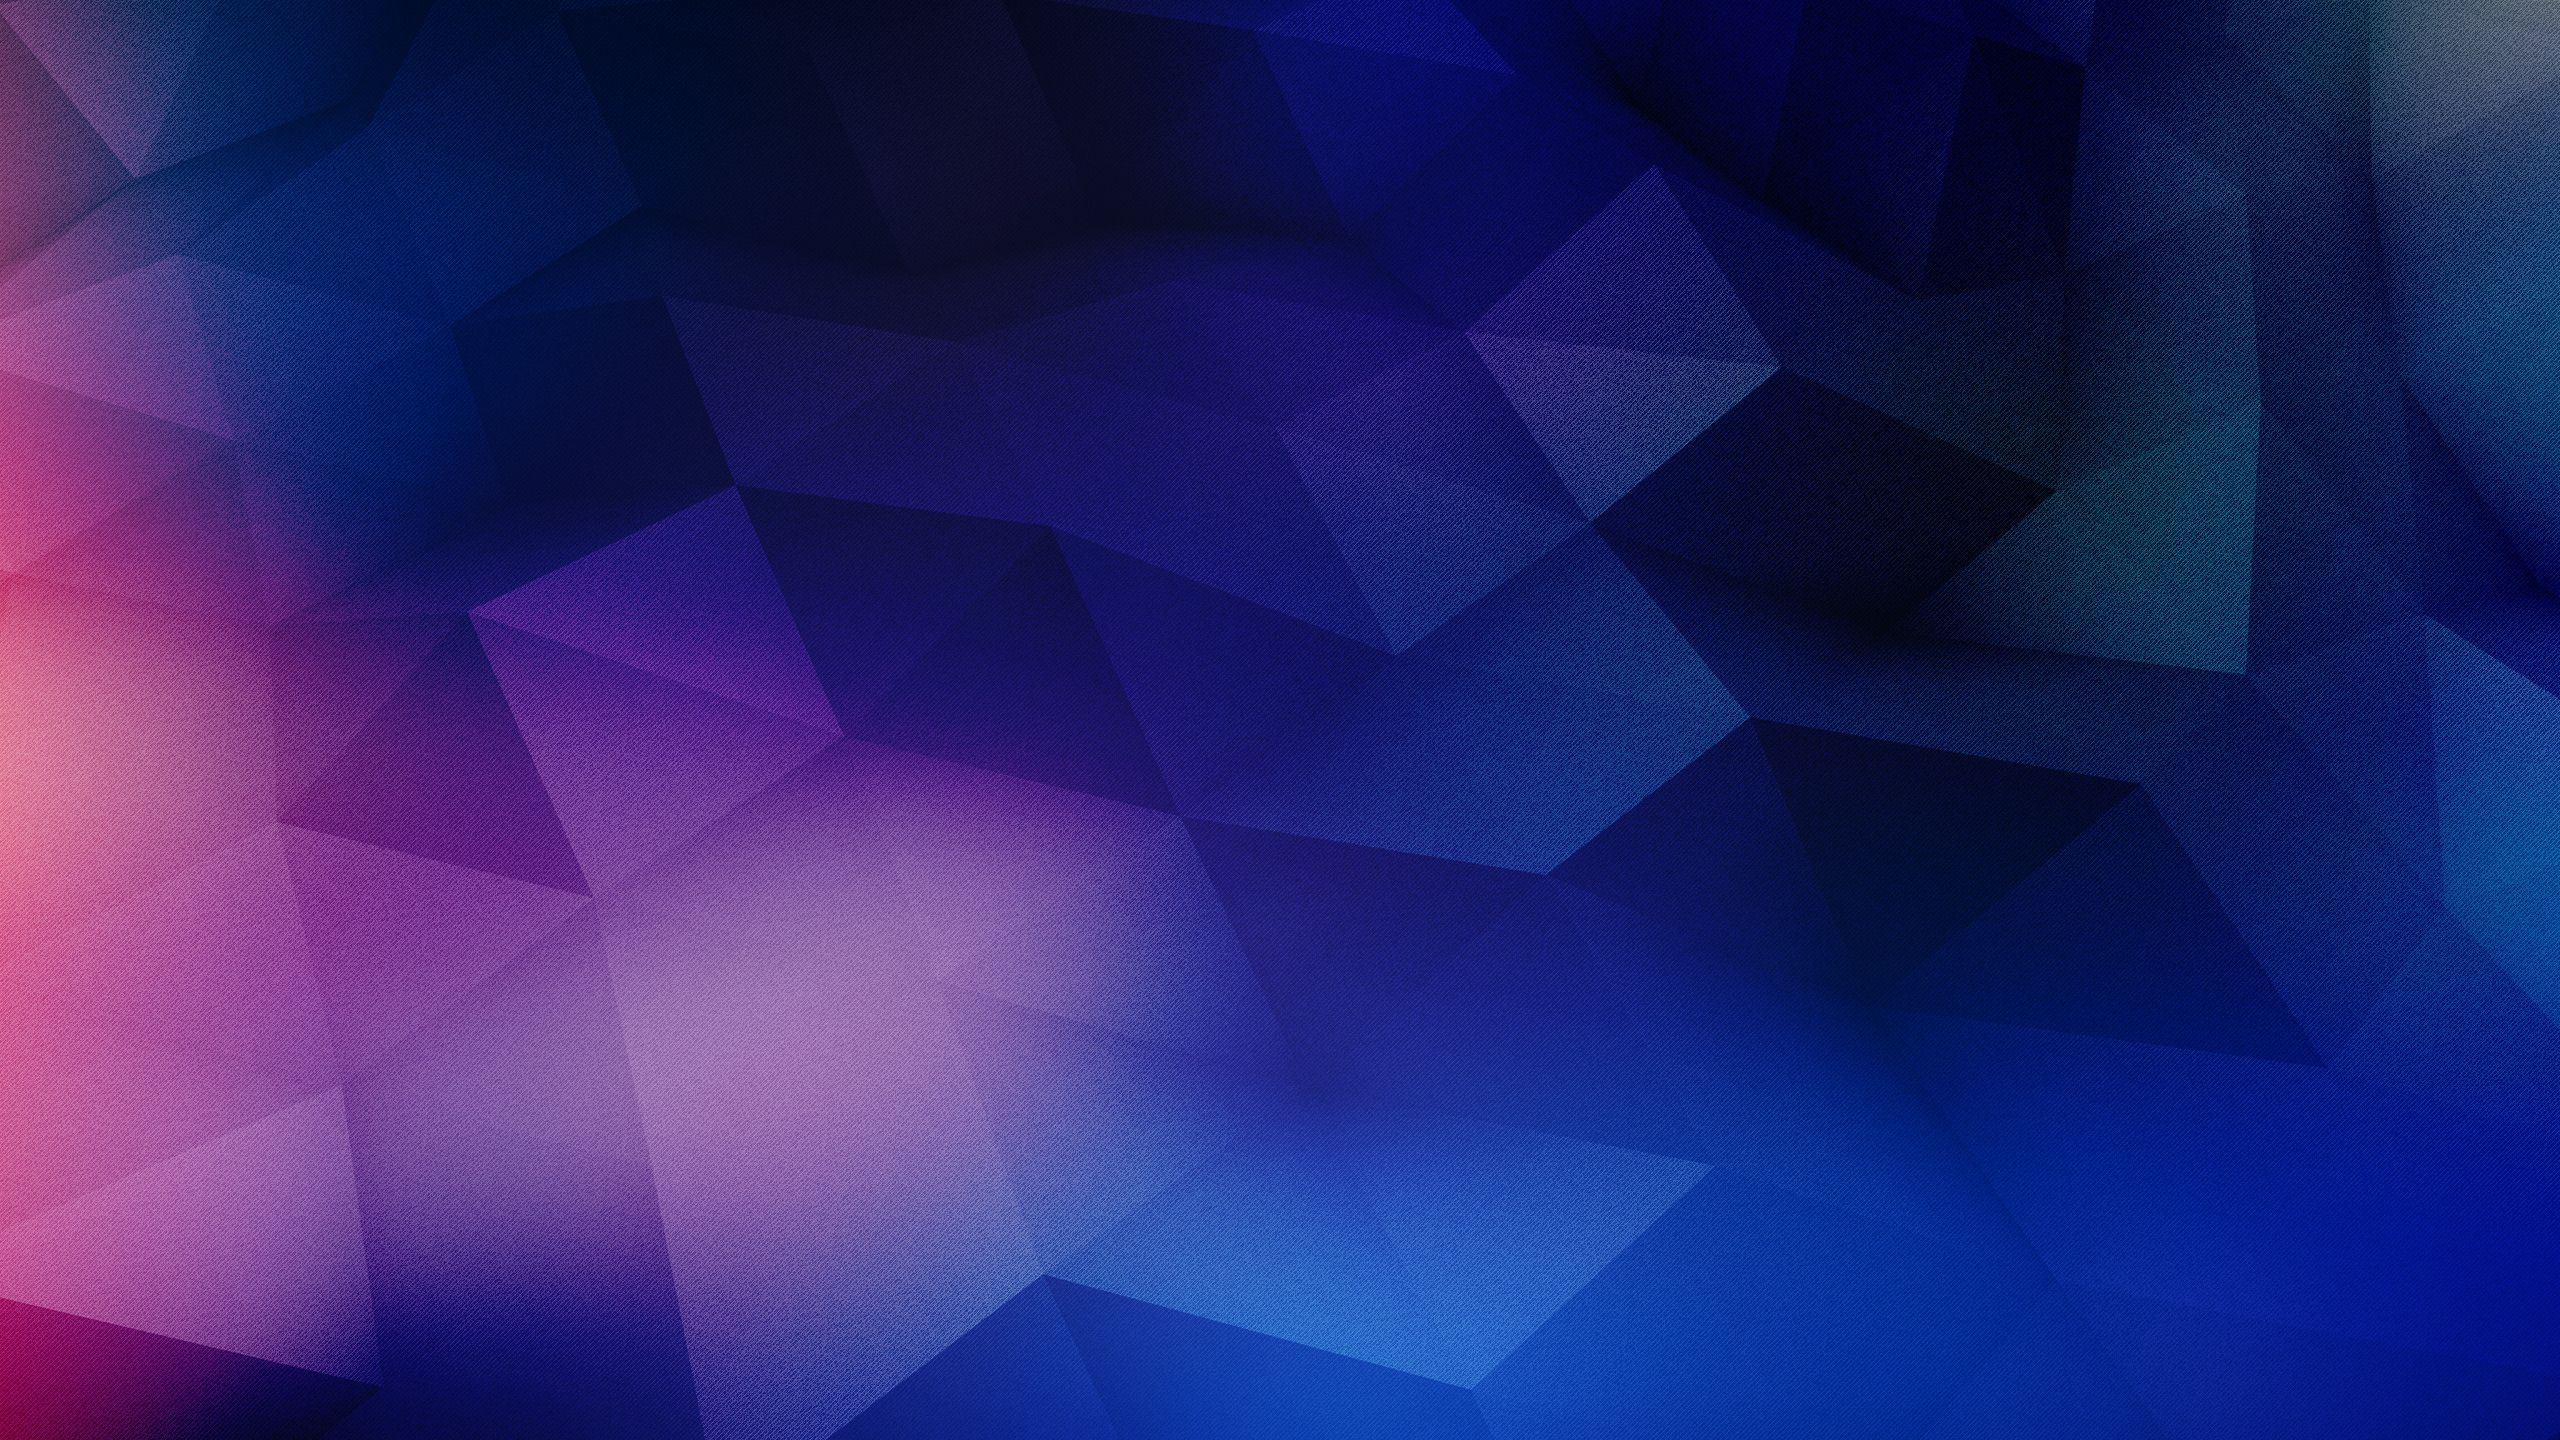 2560x1440 Wallpaper texture triangles abstraction 2560x1440